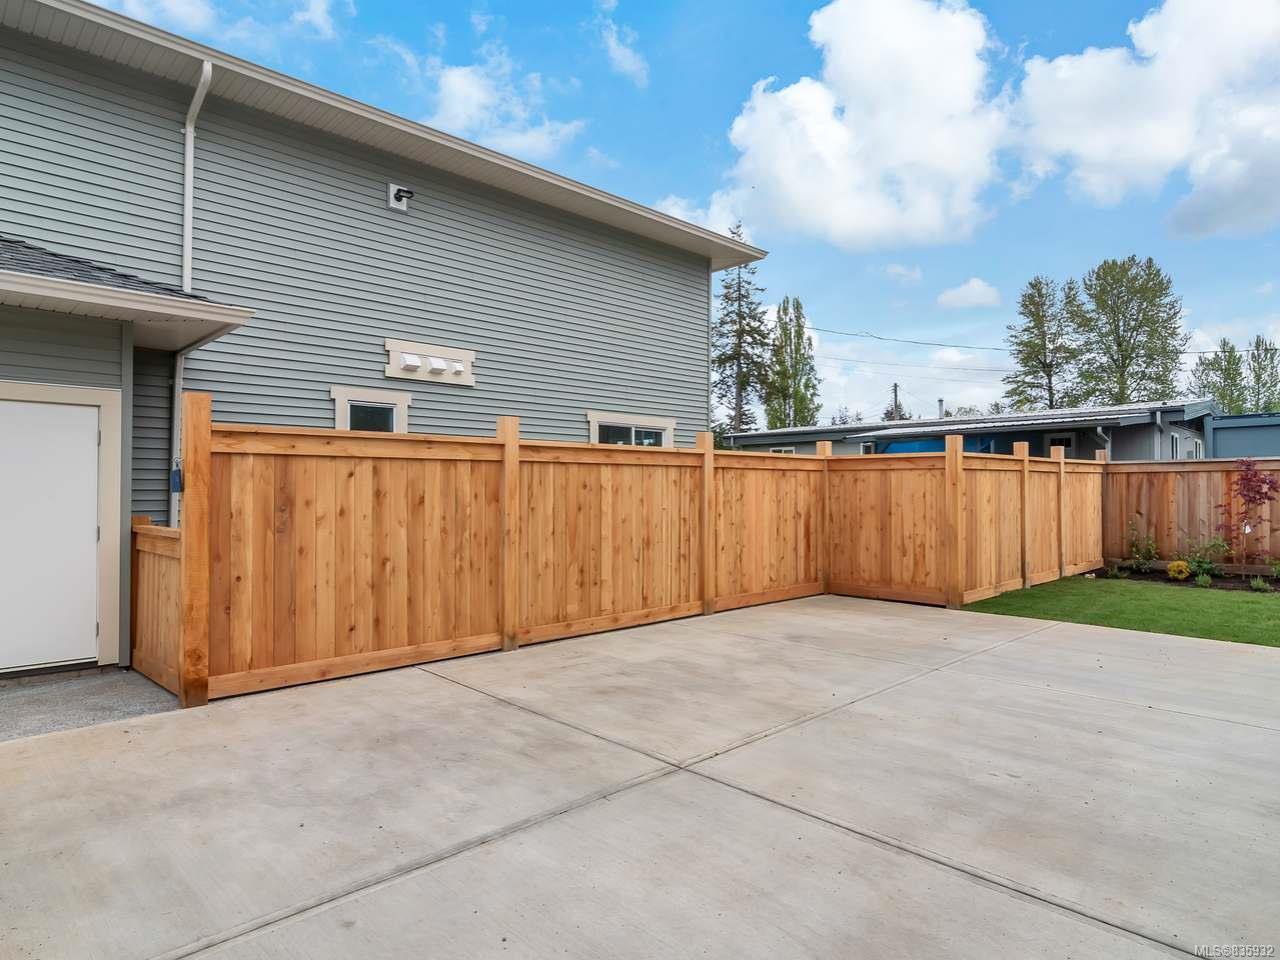 Photo 36: Photos: D 328 Petersen Rd in CAMPBELL RIVER: CR Campbell River West Row/Townhouse for sale (Campbell River)  : MLS®# 835932